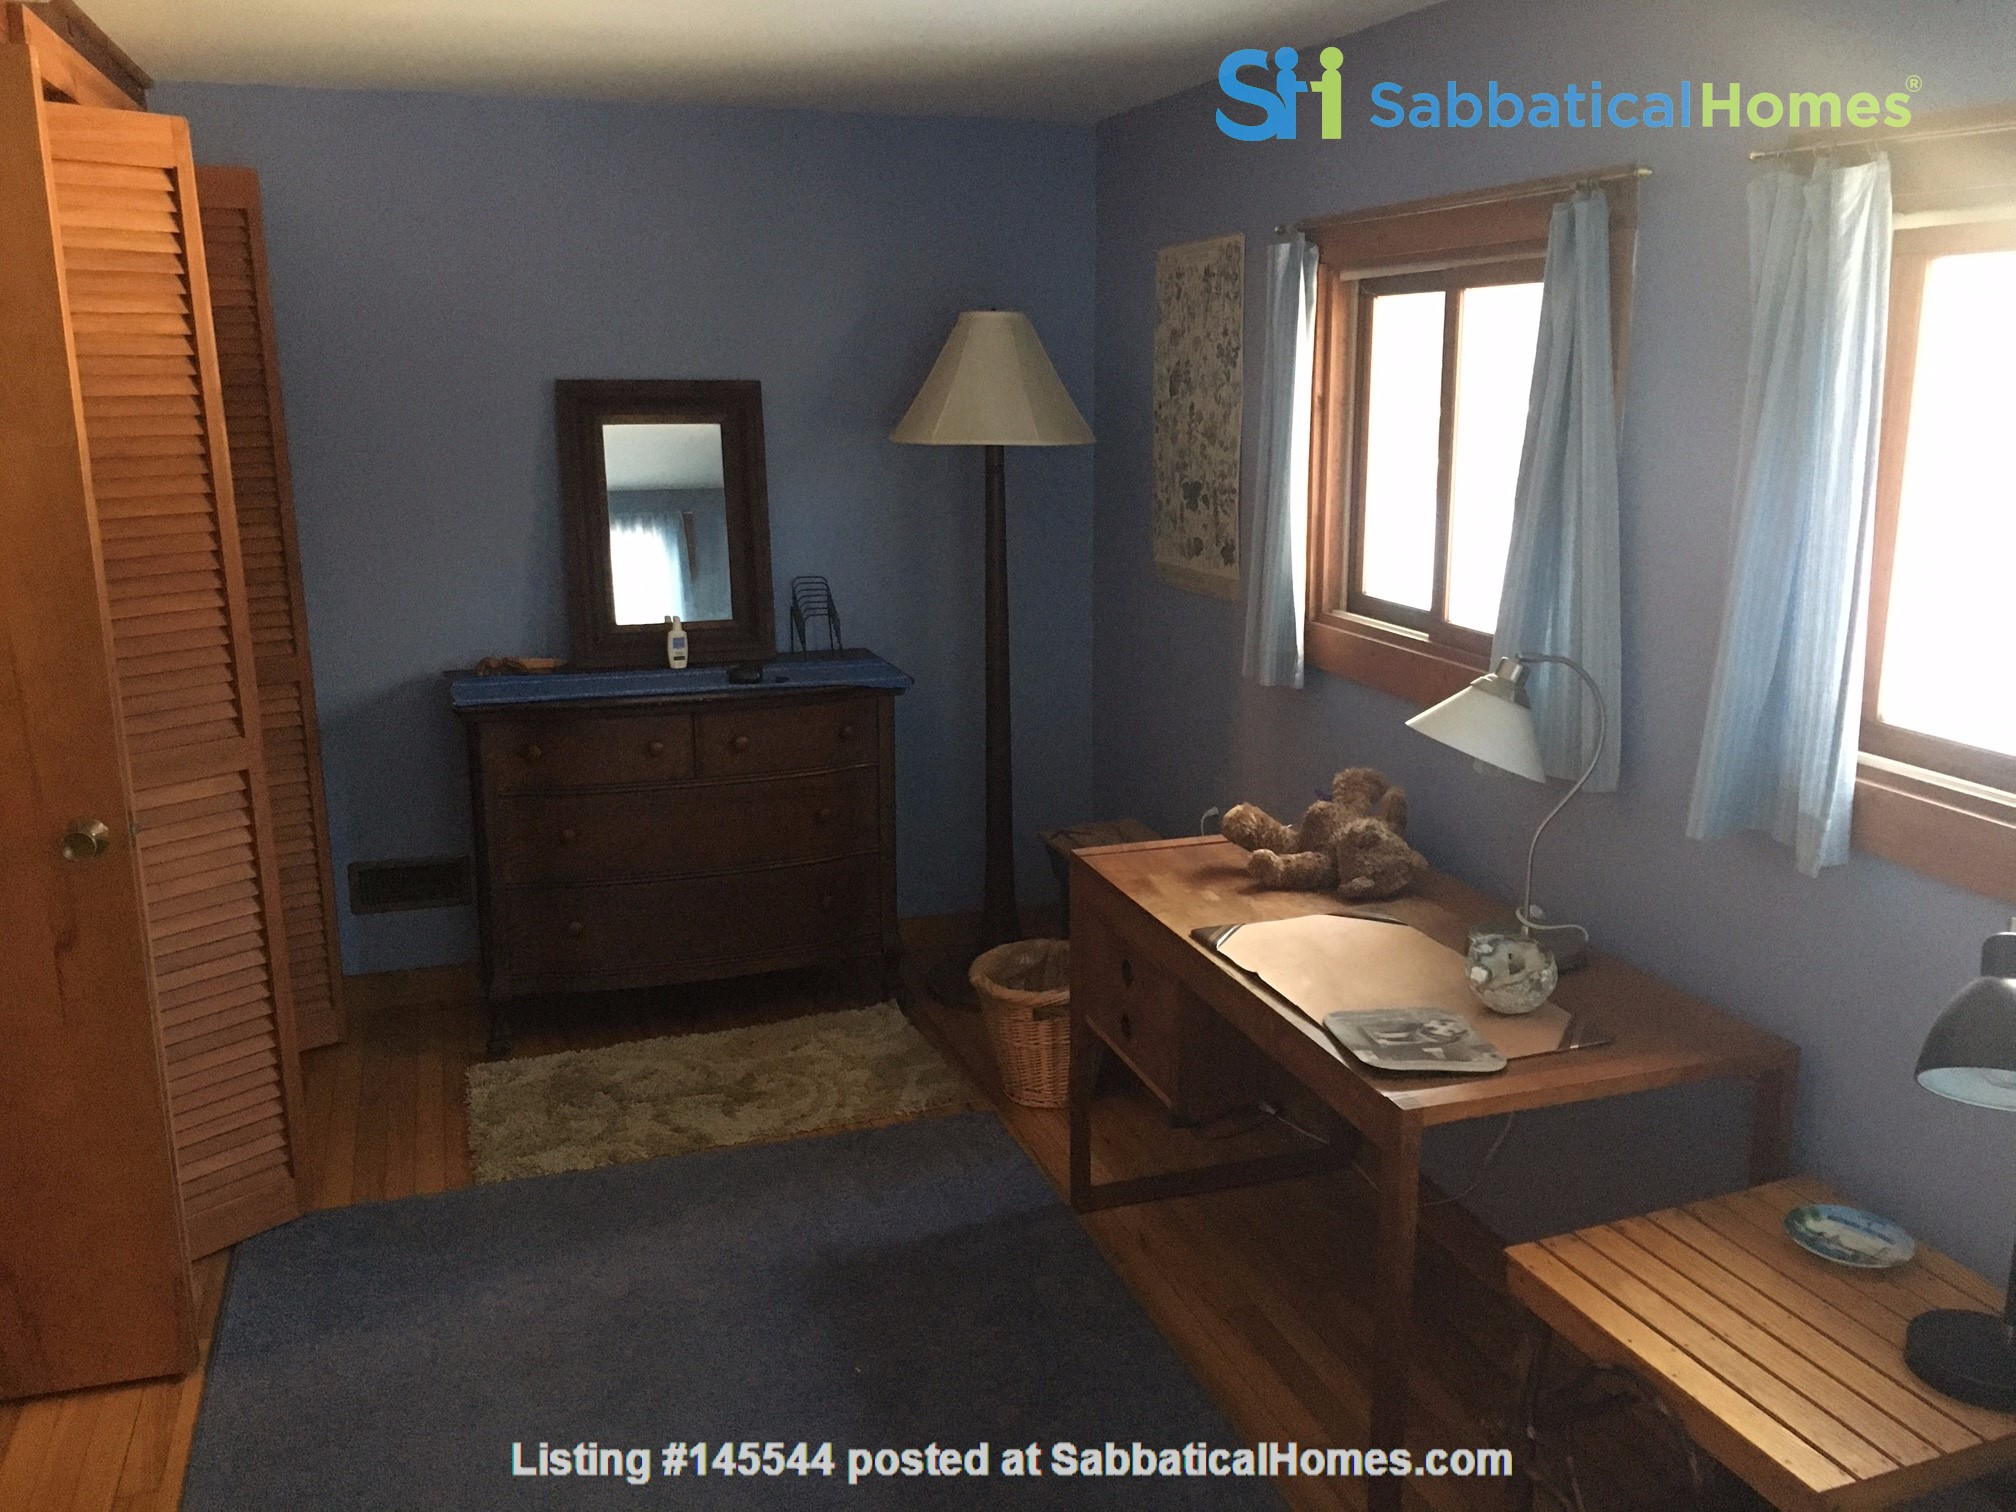 3-bedroom home, country setting, close to Cornell and Ithaca College. Home Rental in Ithaca, New York, United States 5